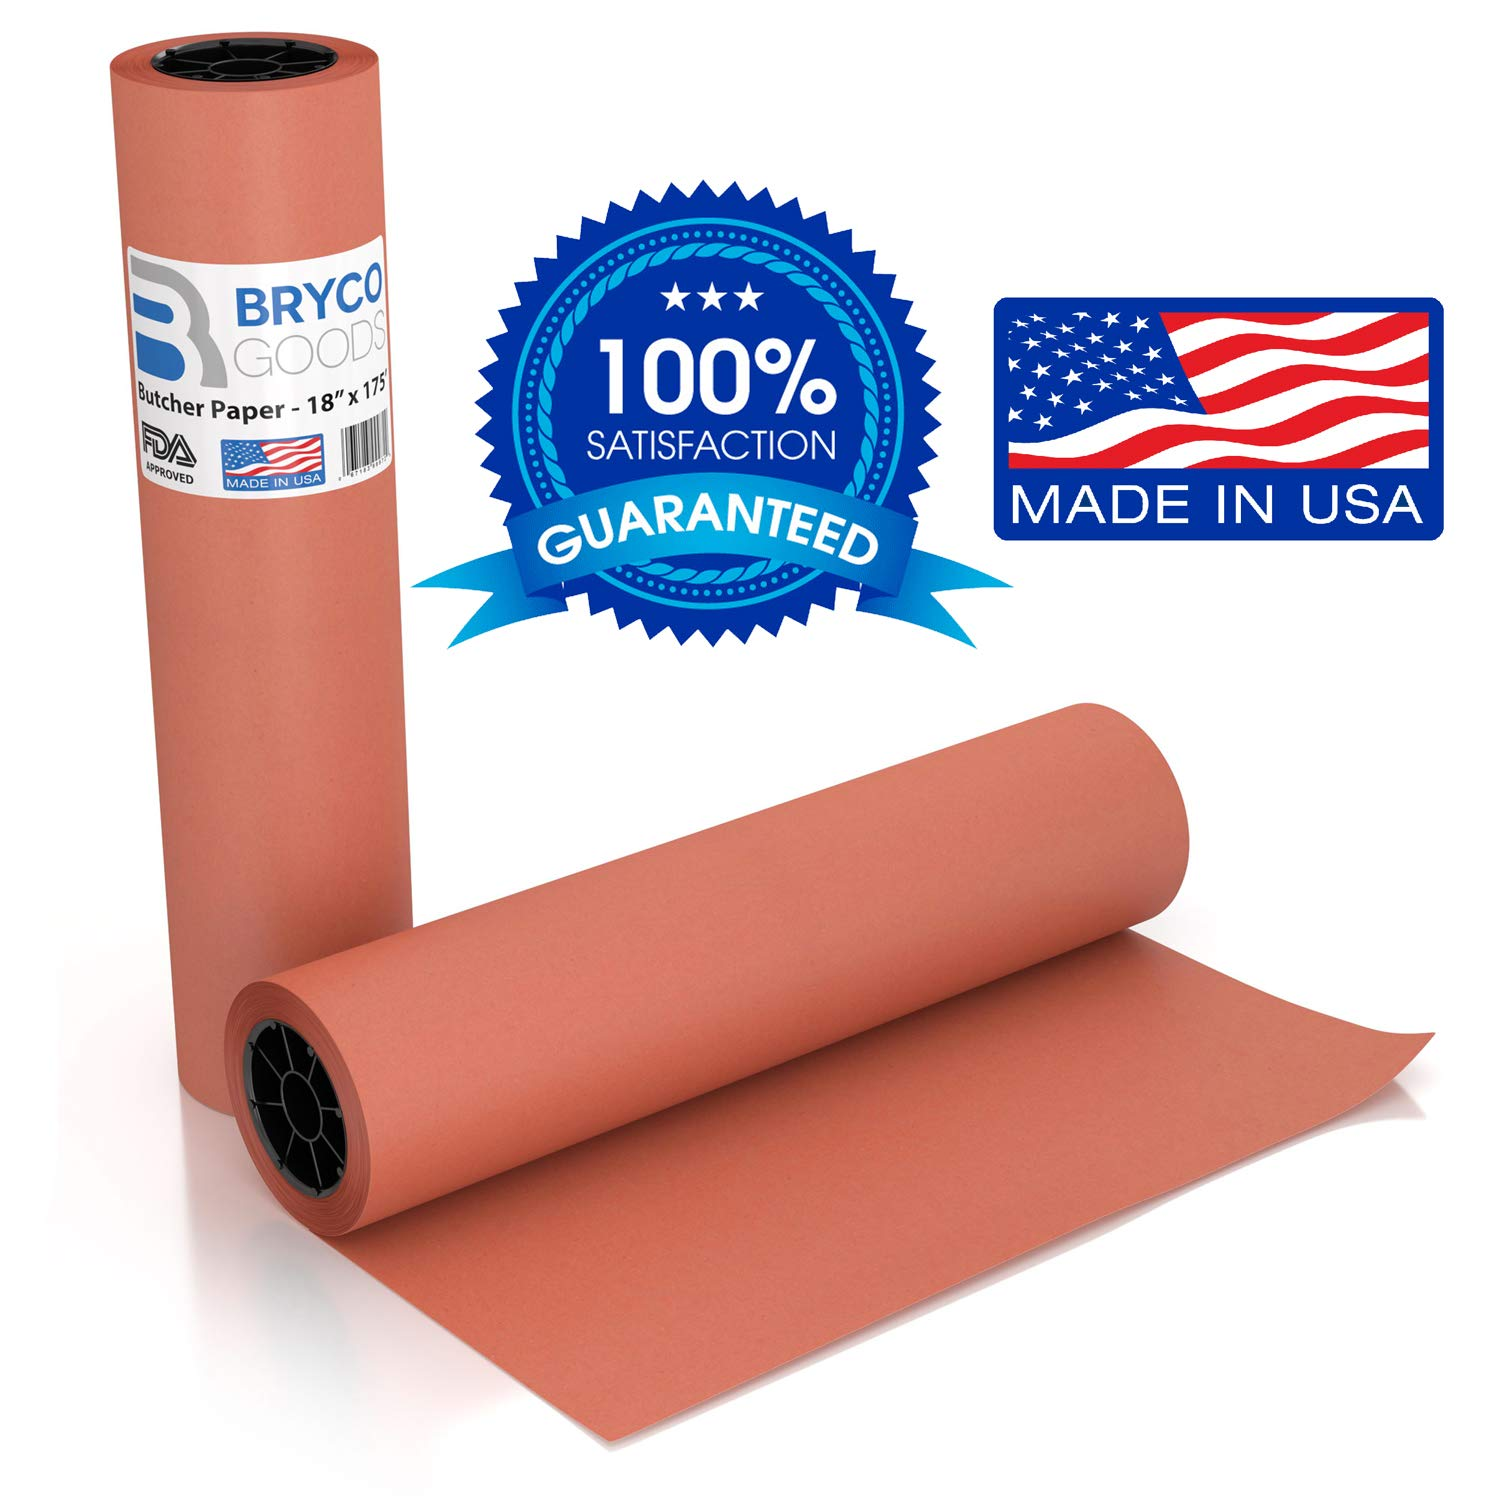 Pink Kraft Butcher Paper Roll - 18 Inch x 175 Feet (2100 Inch) - Food Grade FDA Approved - Peach Wrapping Paper for Smoking Meat of All Varieties - Made in USA - Unbleached, Unwaxed and Uncoated by Bryco Goods